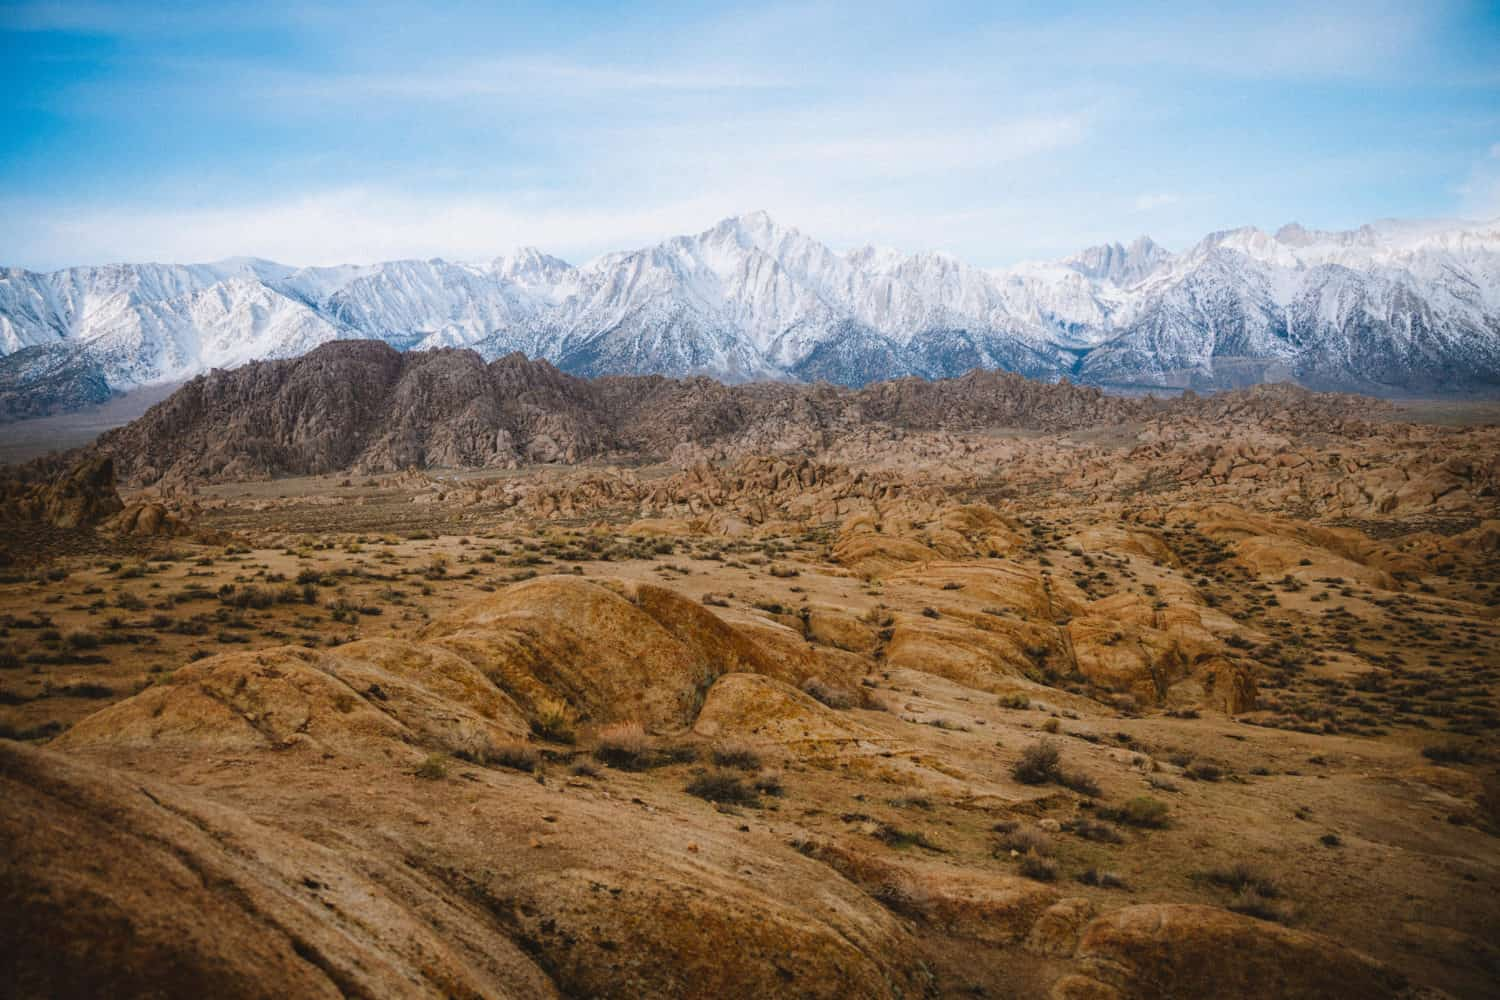 Landscape shot of Alabama Hills, California